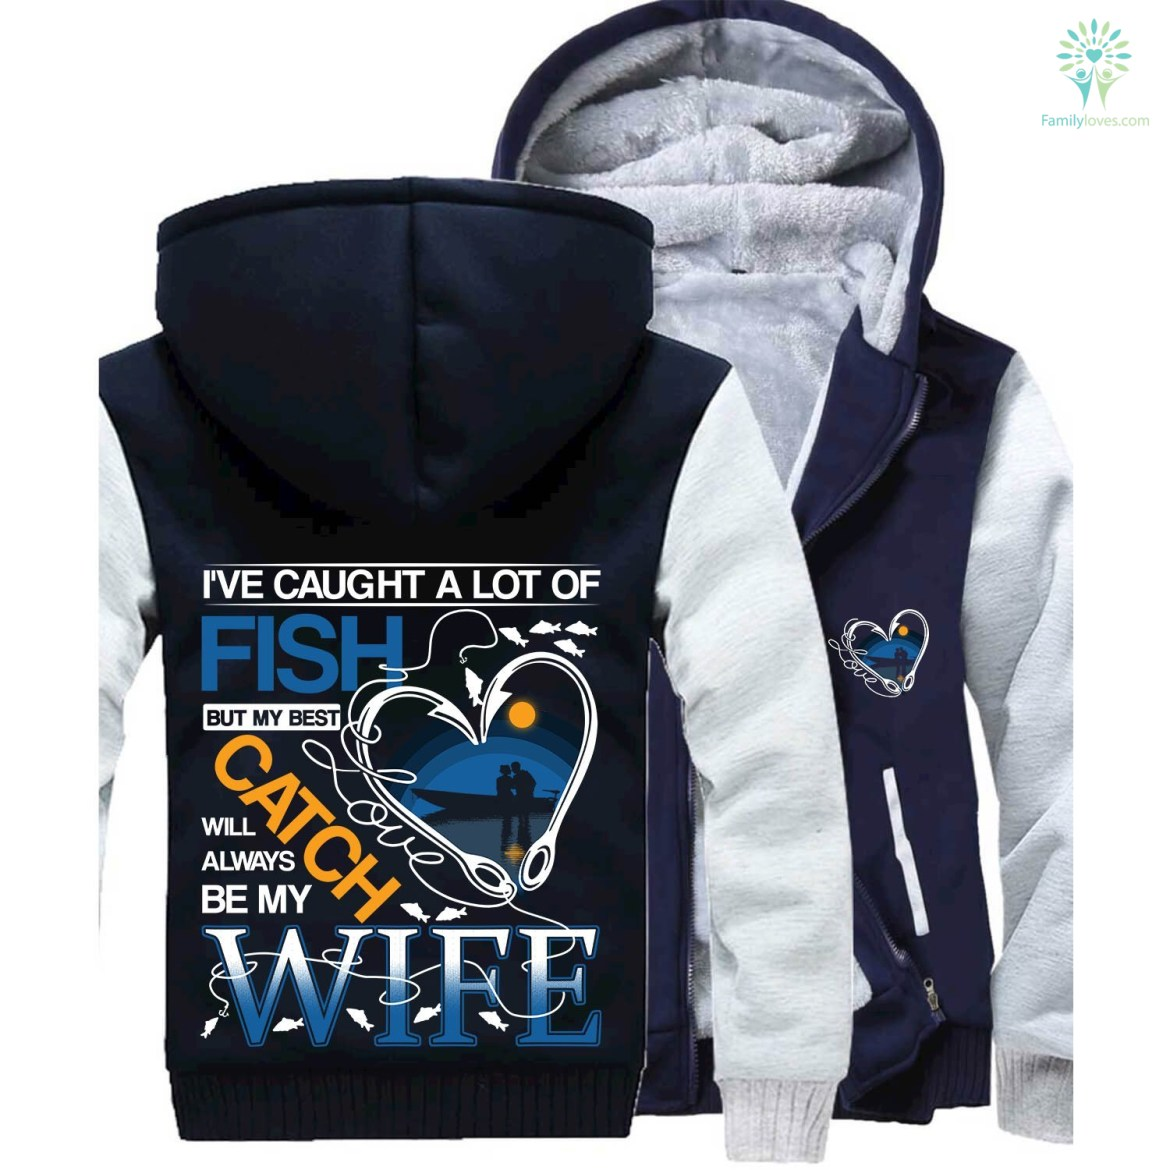 I've caught a lot of fish but my best catch will always be my wife Jacket hoodie 2017 hot %tag familyloves.com